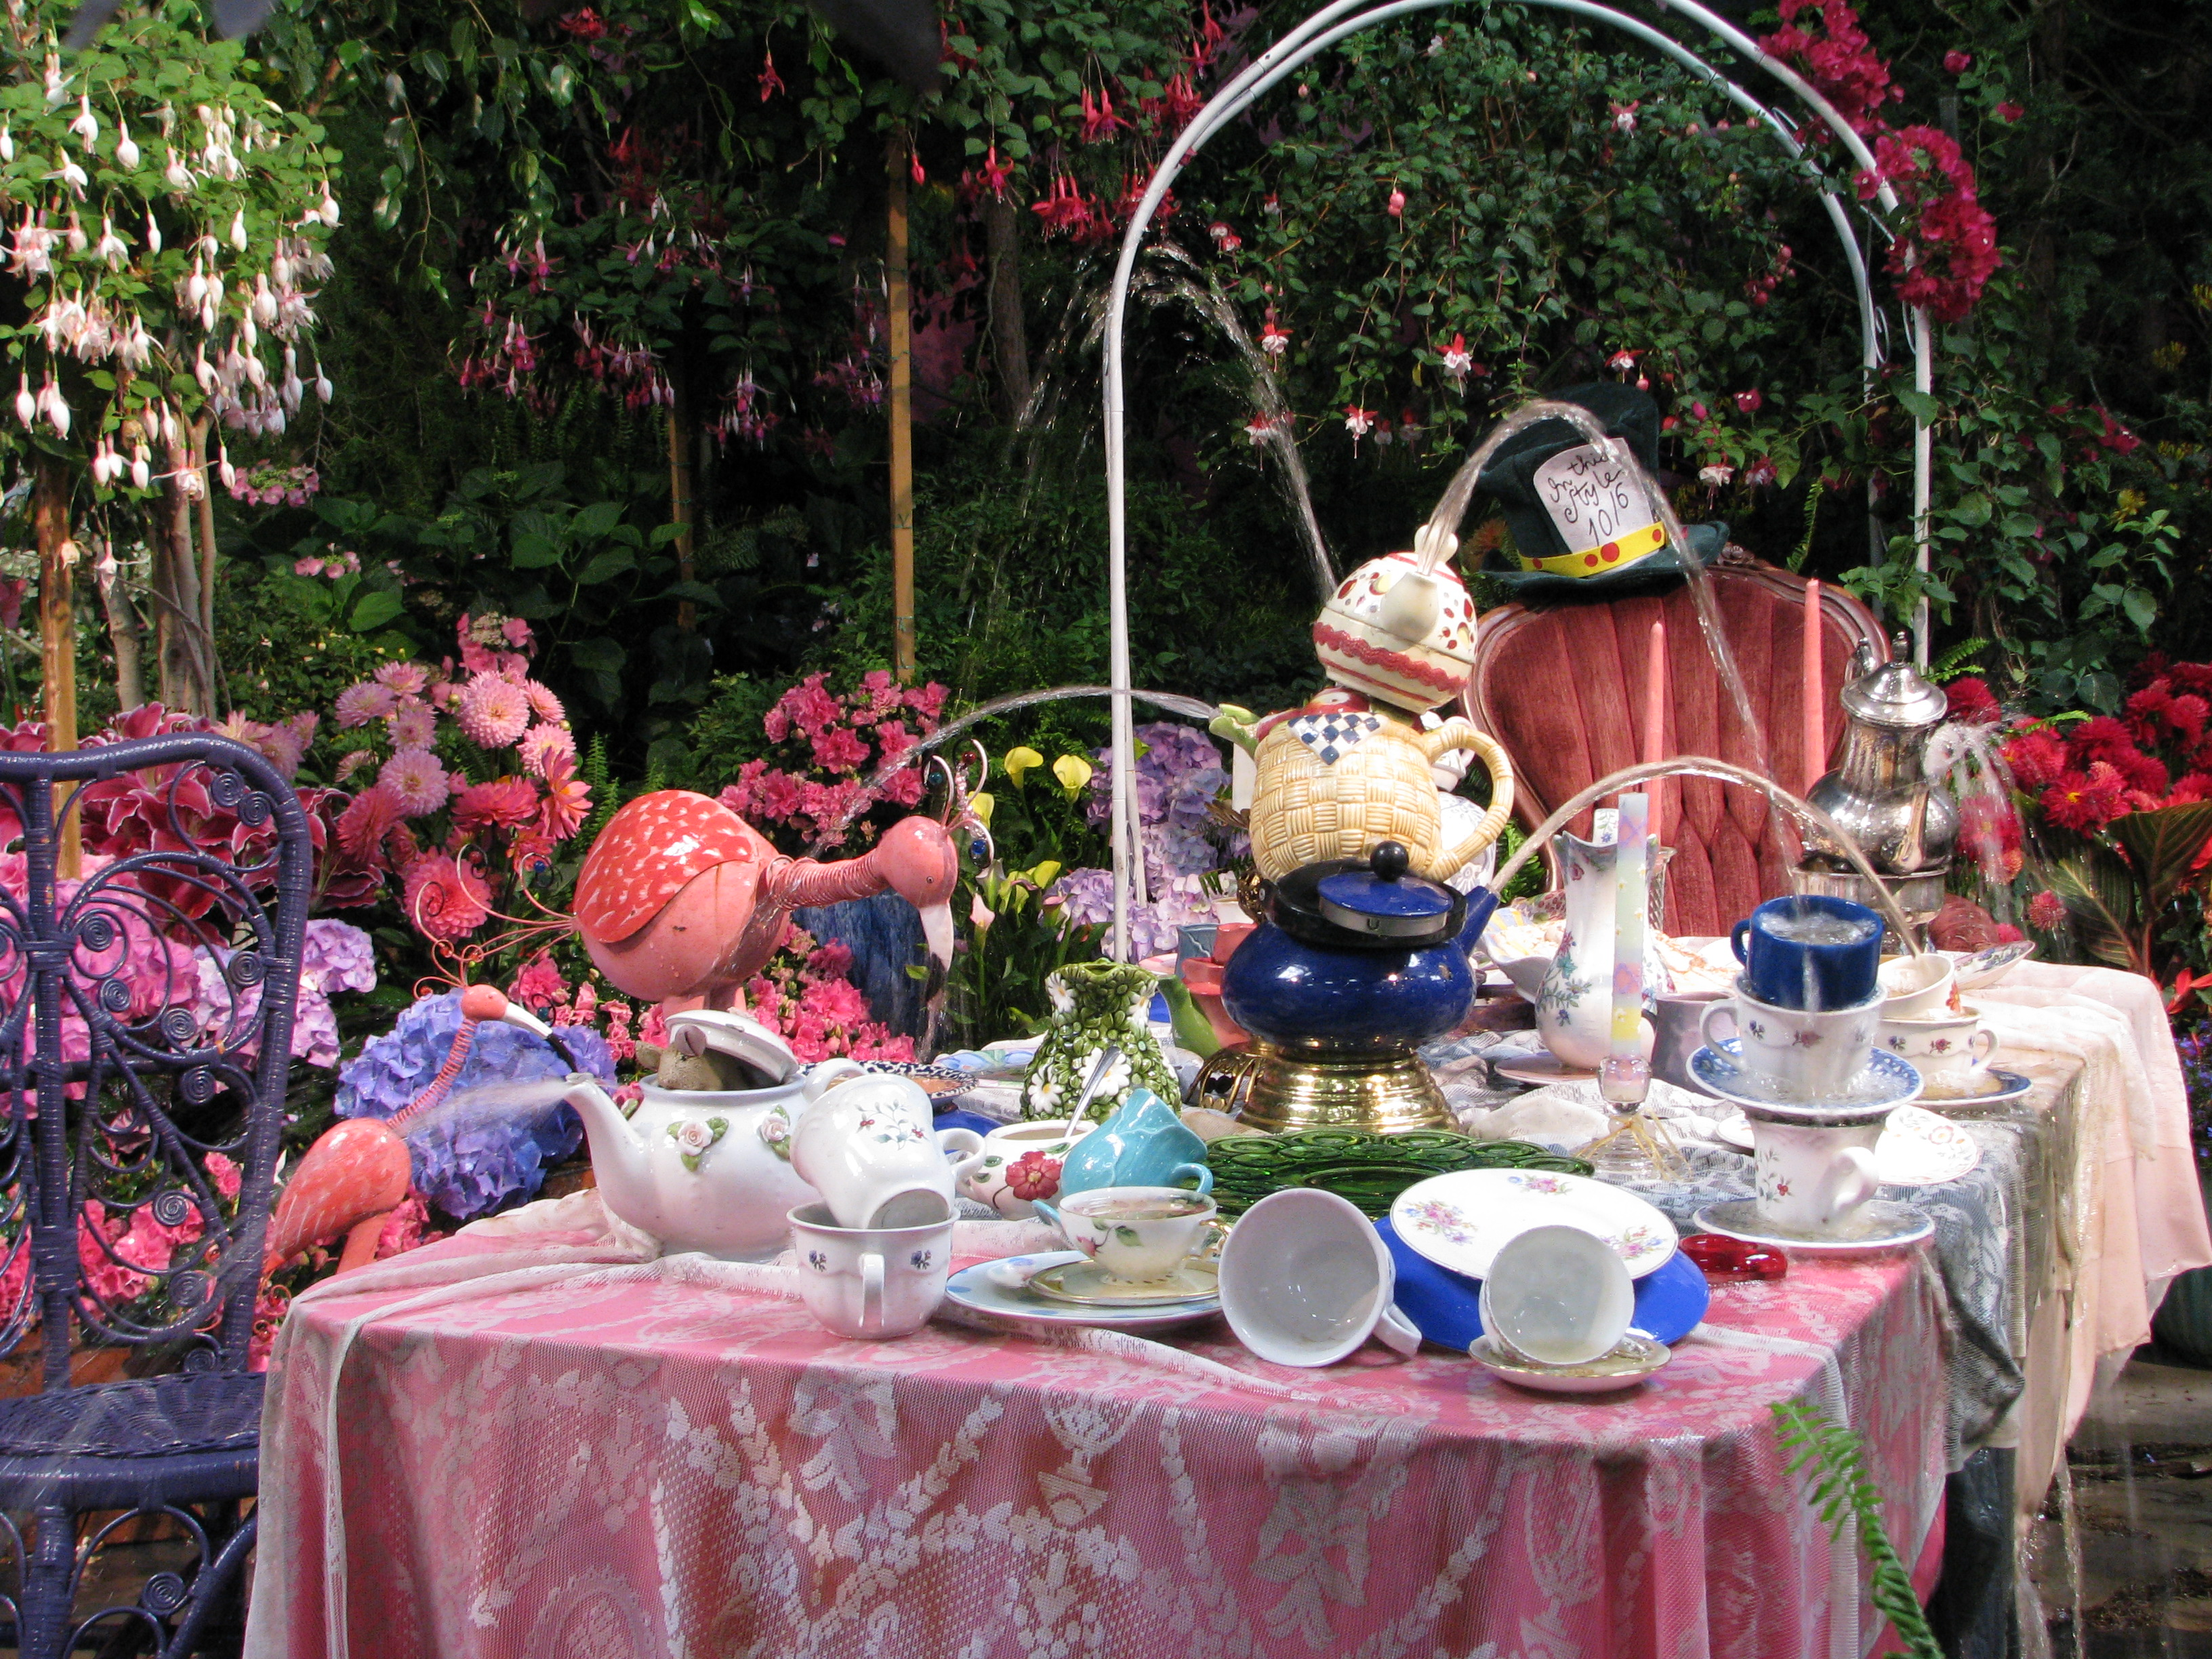 mad as a hatter's tea party!